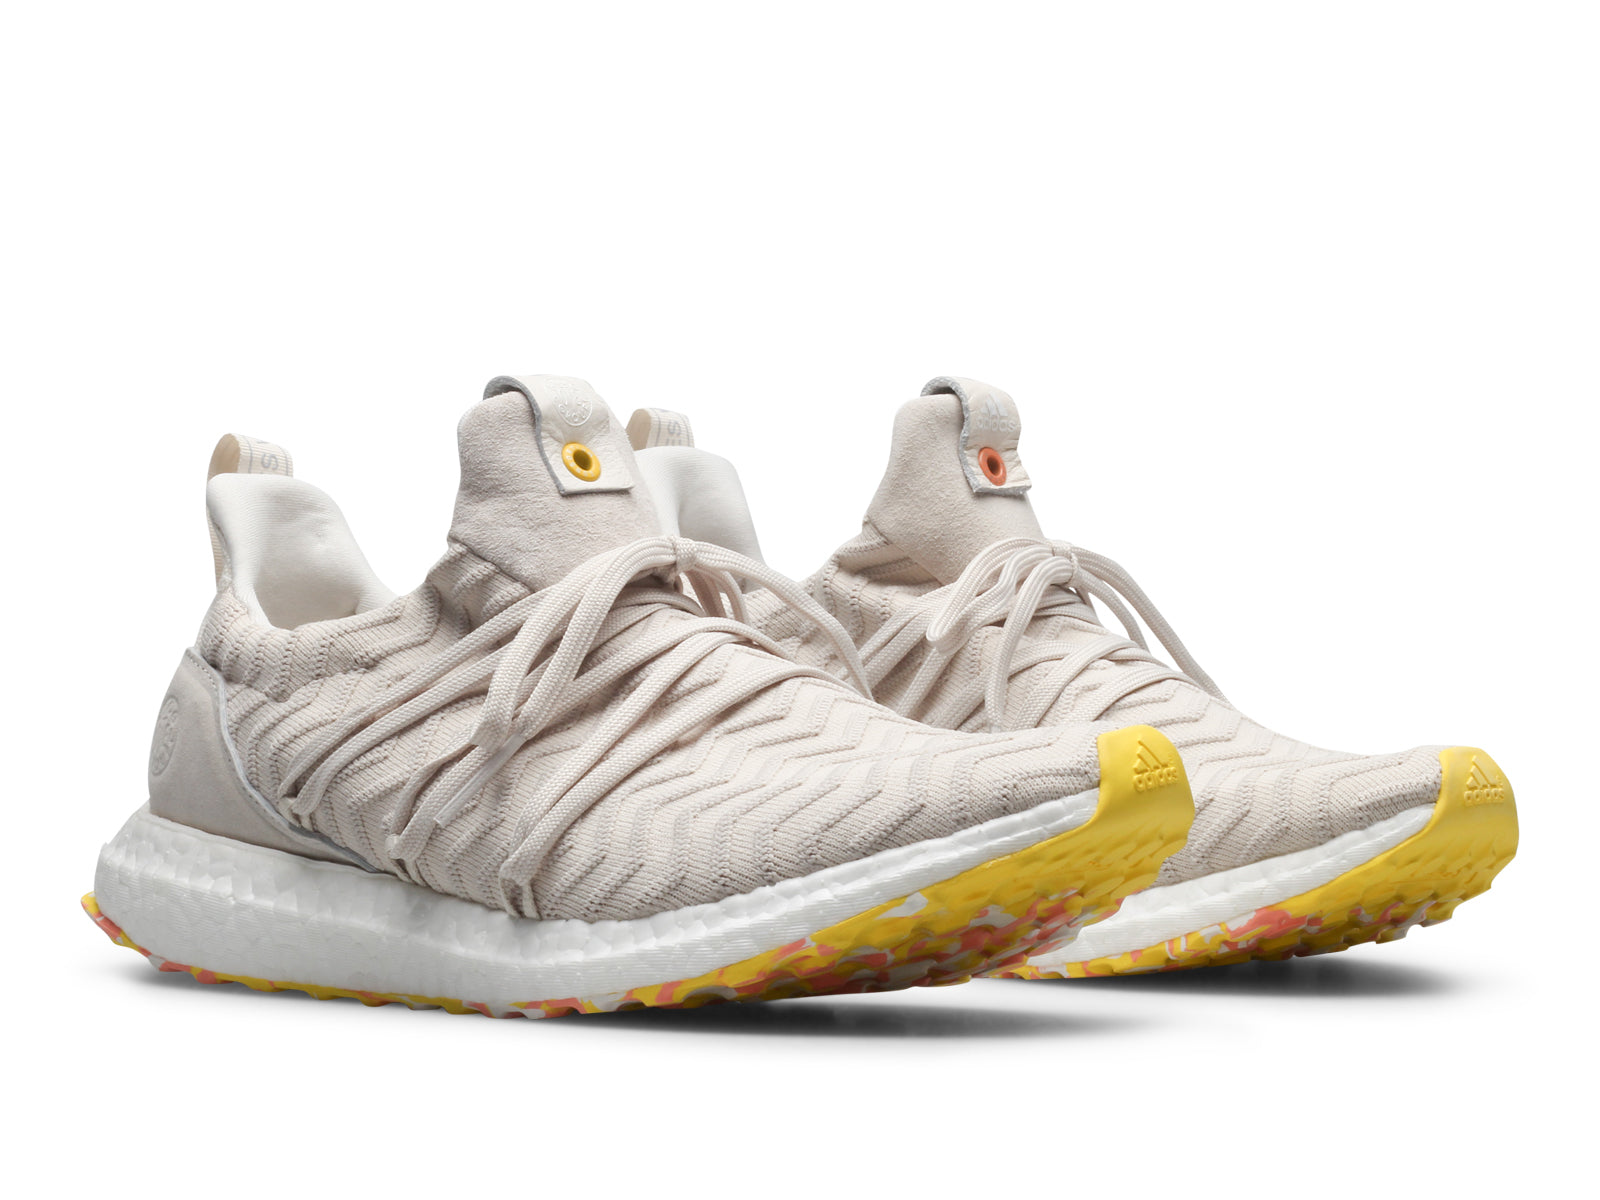 026b57463 The Adidas x A.K.O.G Ultra Boost features a White Primeknit upper that  boasts a raised wave effect with an uncaged design. A wrap-around lacing  system ...